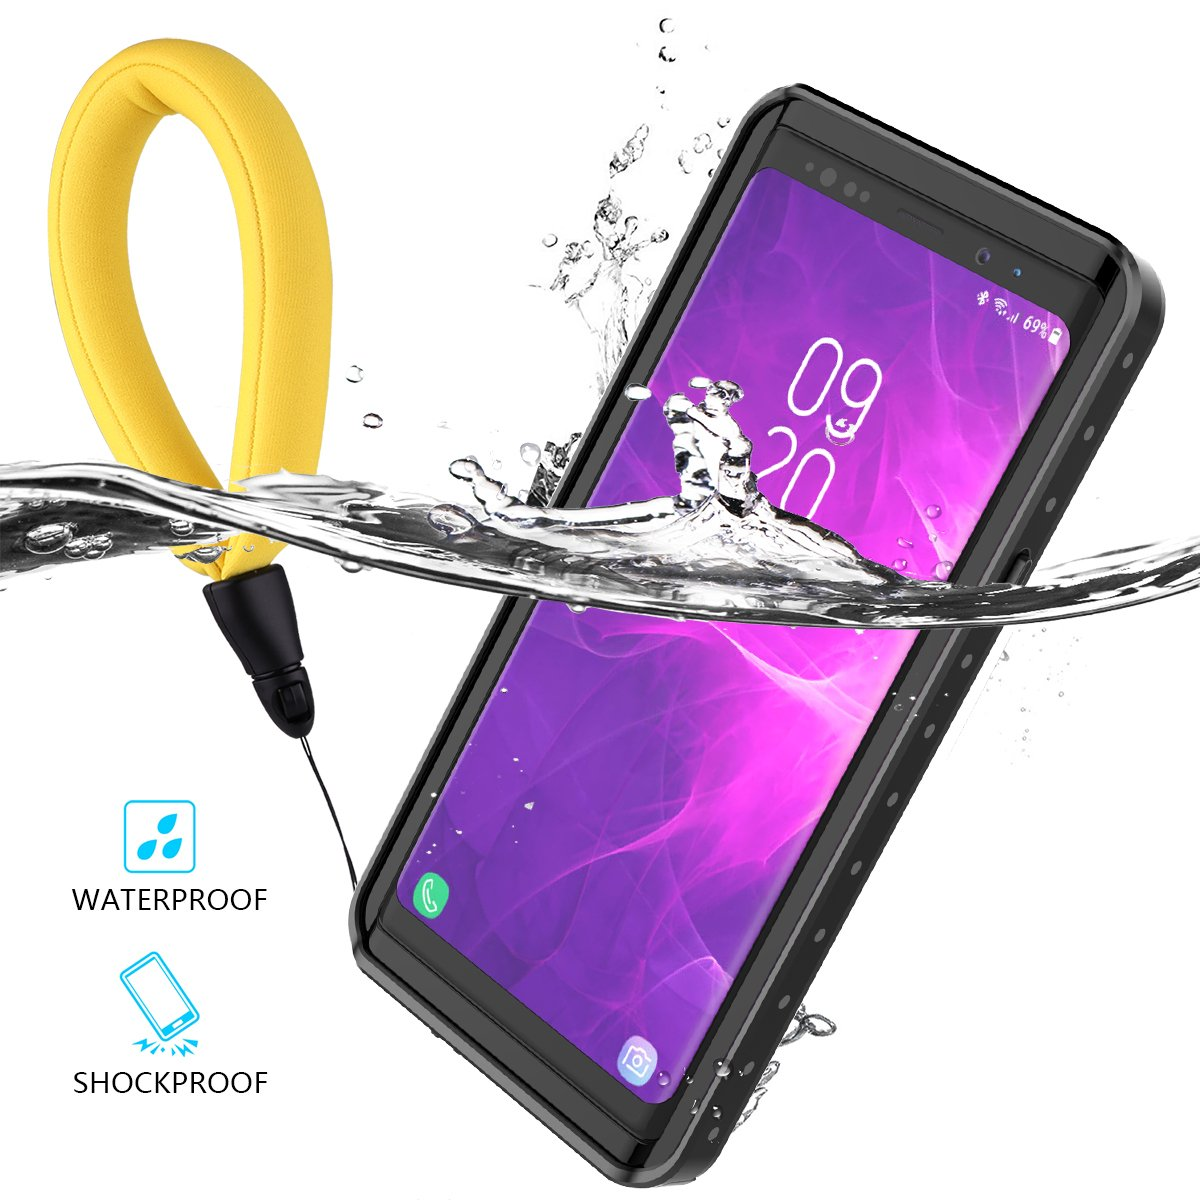 Amazon.com: Samsung Galaxy Note 9 Waterproof Case, Outdoor ...